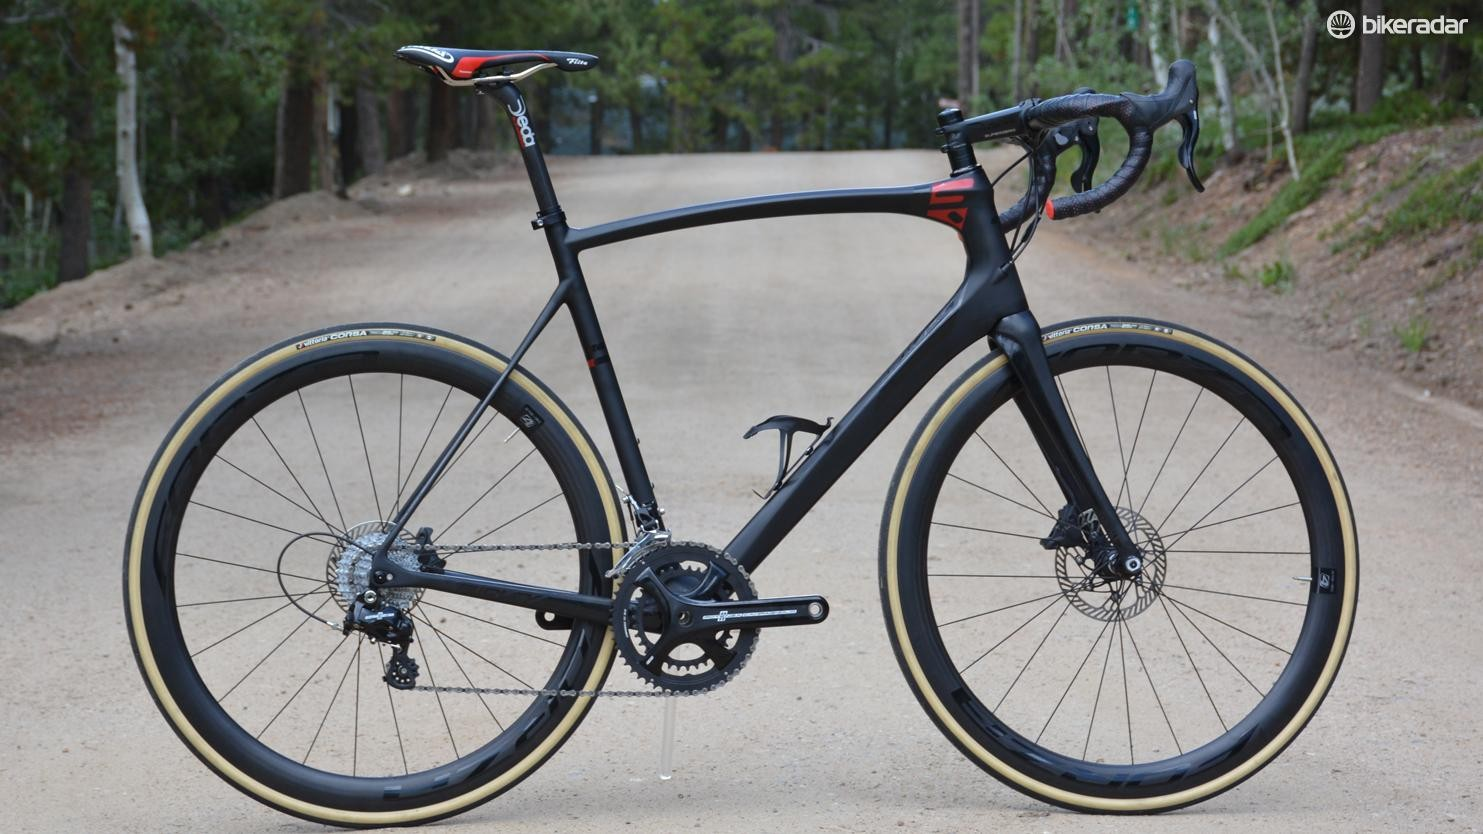 Ridley's Fenix SL gains a letter on its name and loses some substantial grams